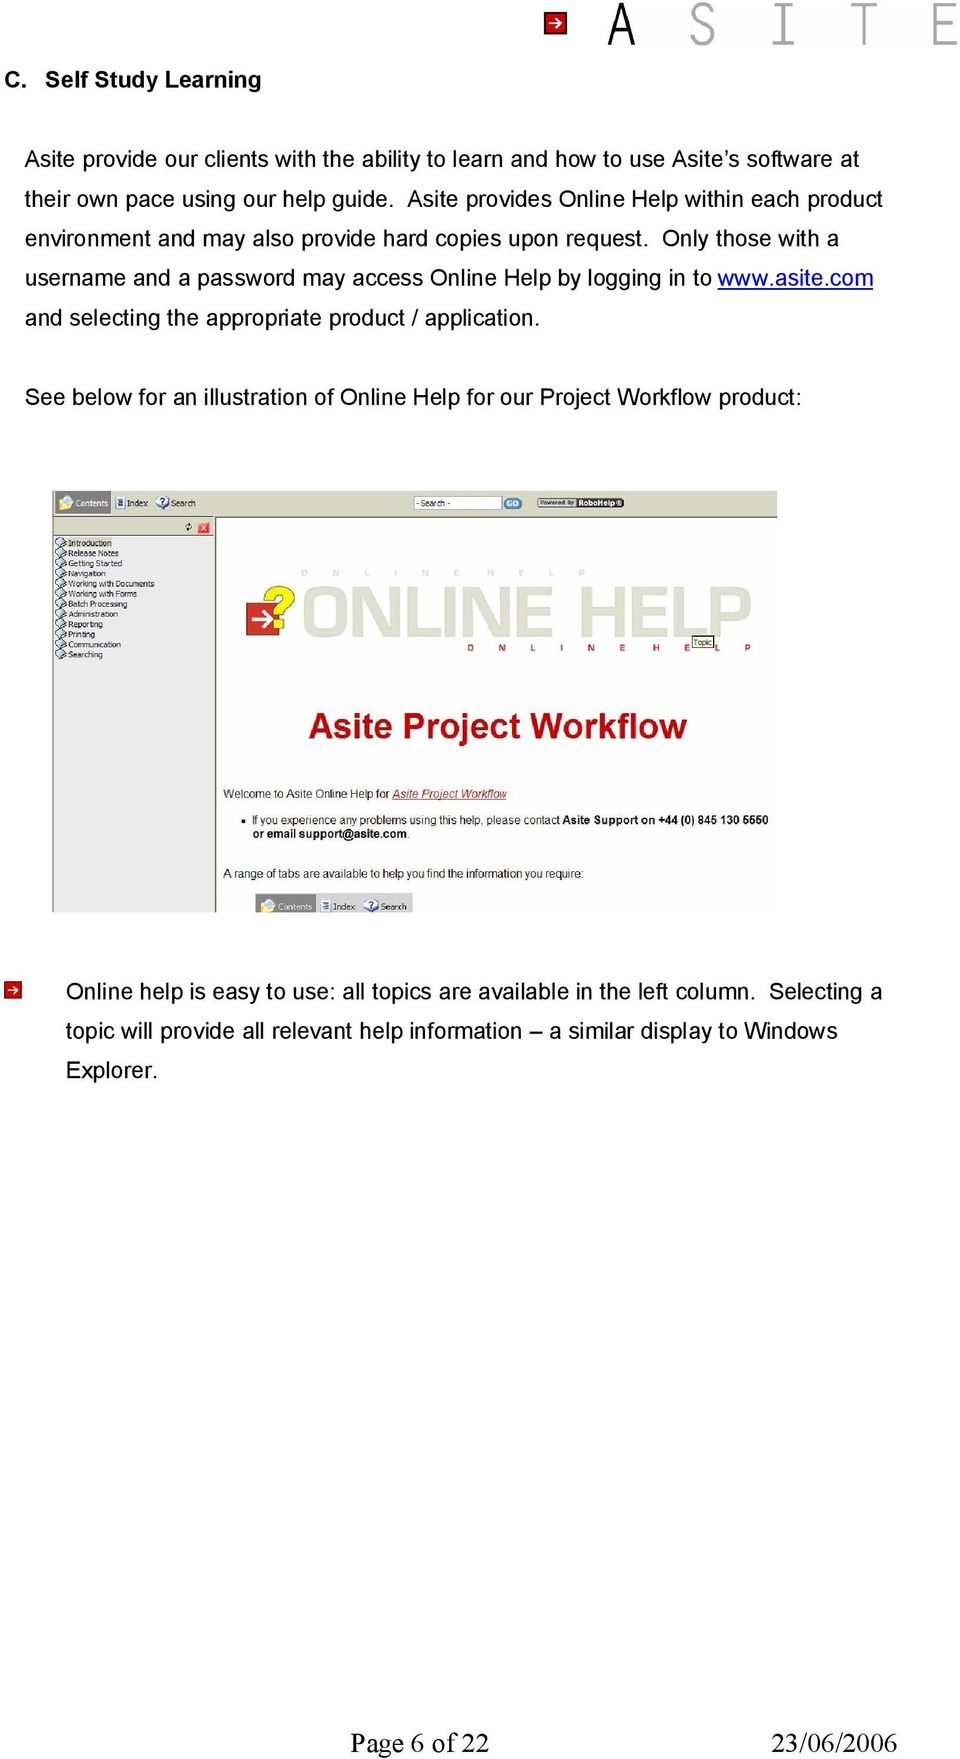 Only those with a username and a password may access Online Help by logging in to www.asite.com and selecting the appropriate product / application.